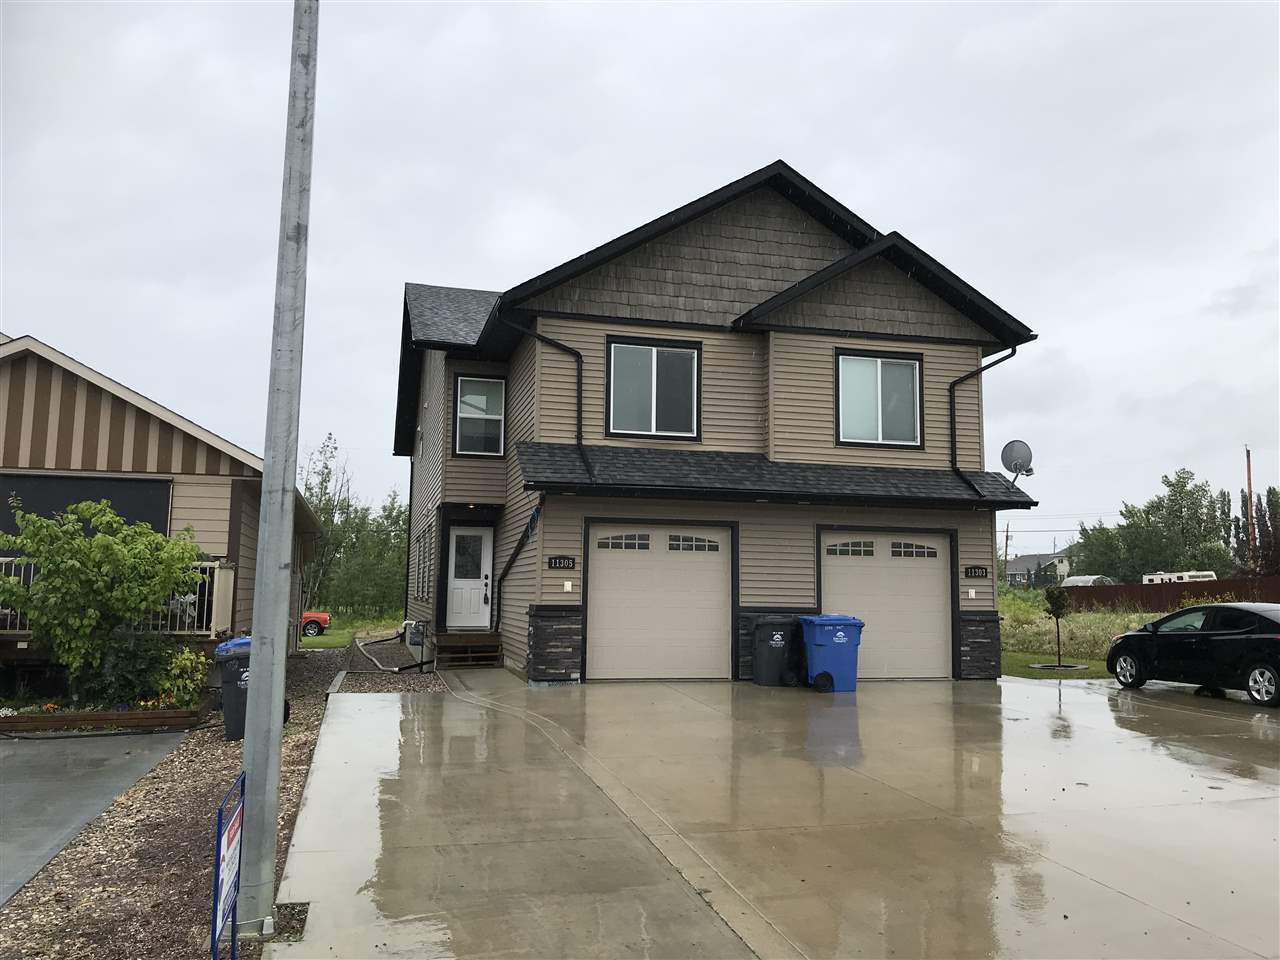 Main Photo: 11305 102 Street in Fort St. John: Fort St. John - City NW House 1/2 Duplex for sale (Fort St. John (Zone 60))  : MLS®# R2392240